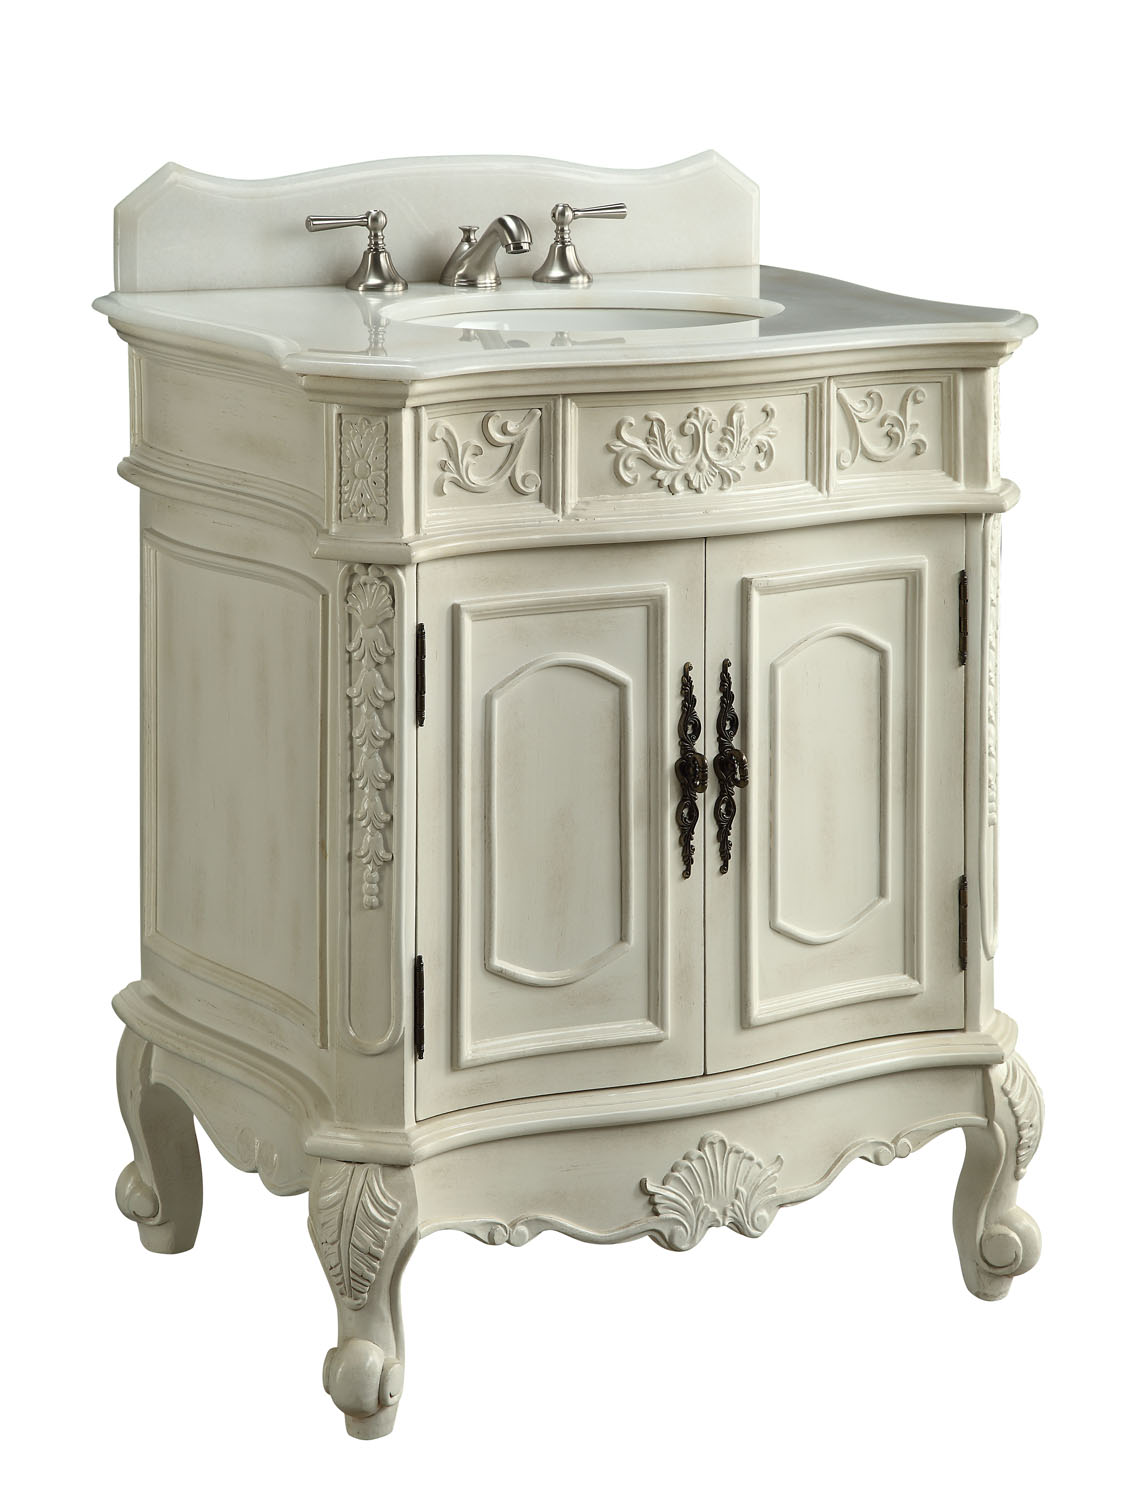 31 inch Bathroom Vanity Traditional Style Antique white Color  (31